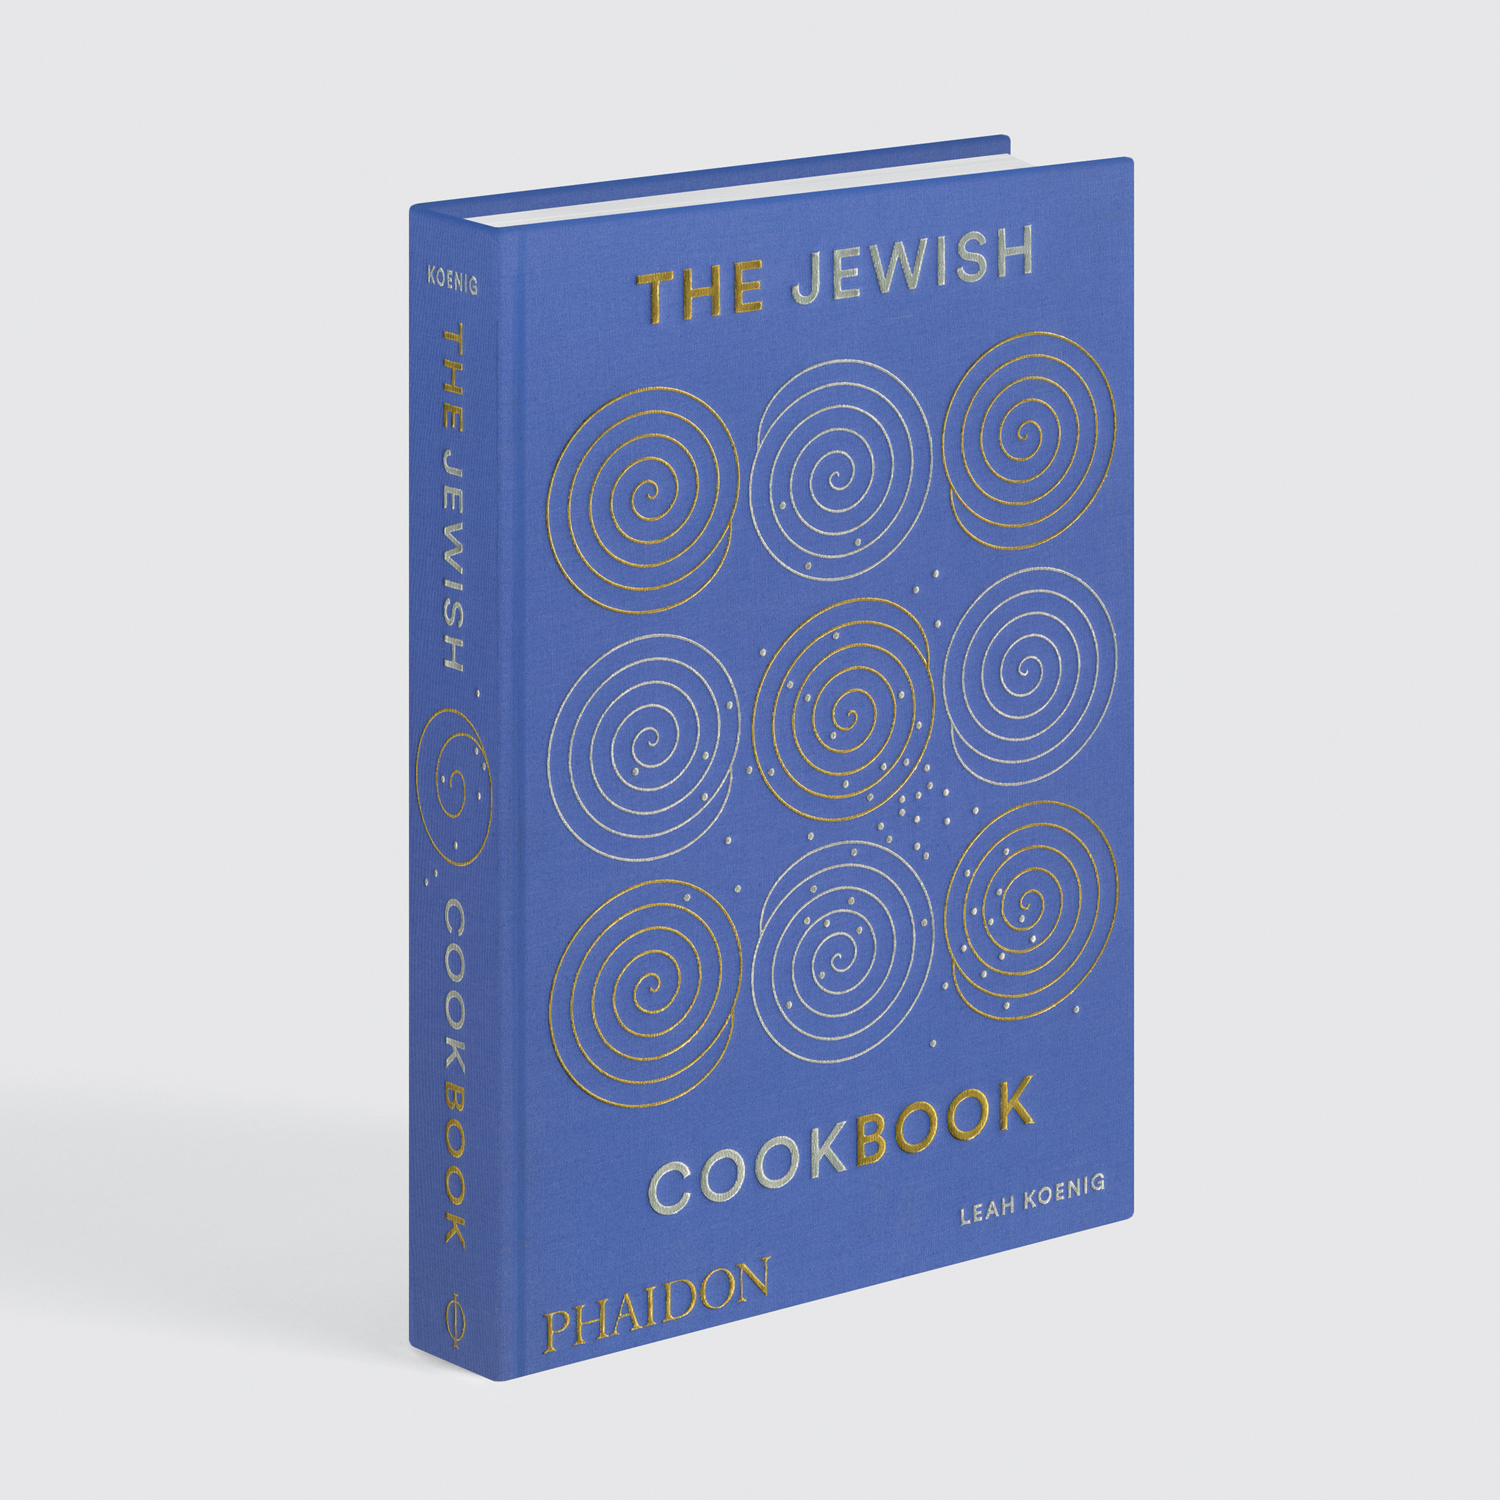 The Jewish Cookbook by Leah Koenig